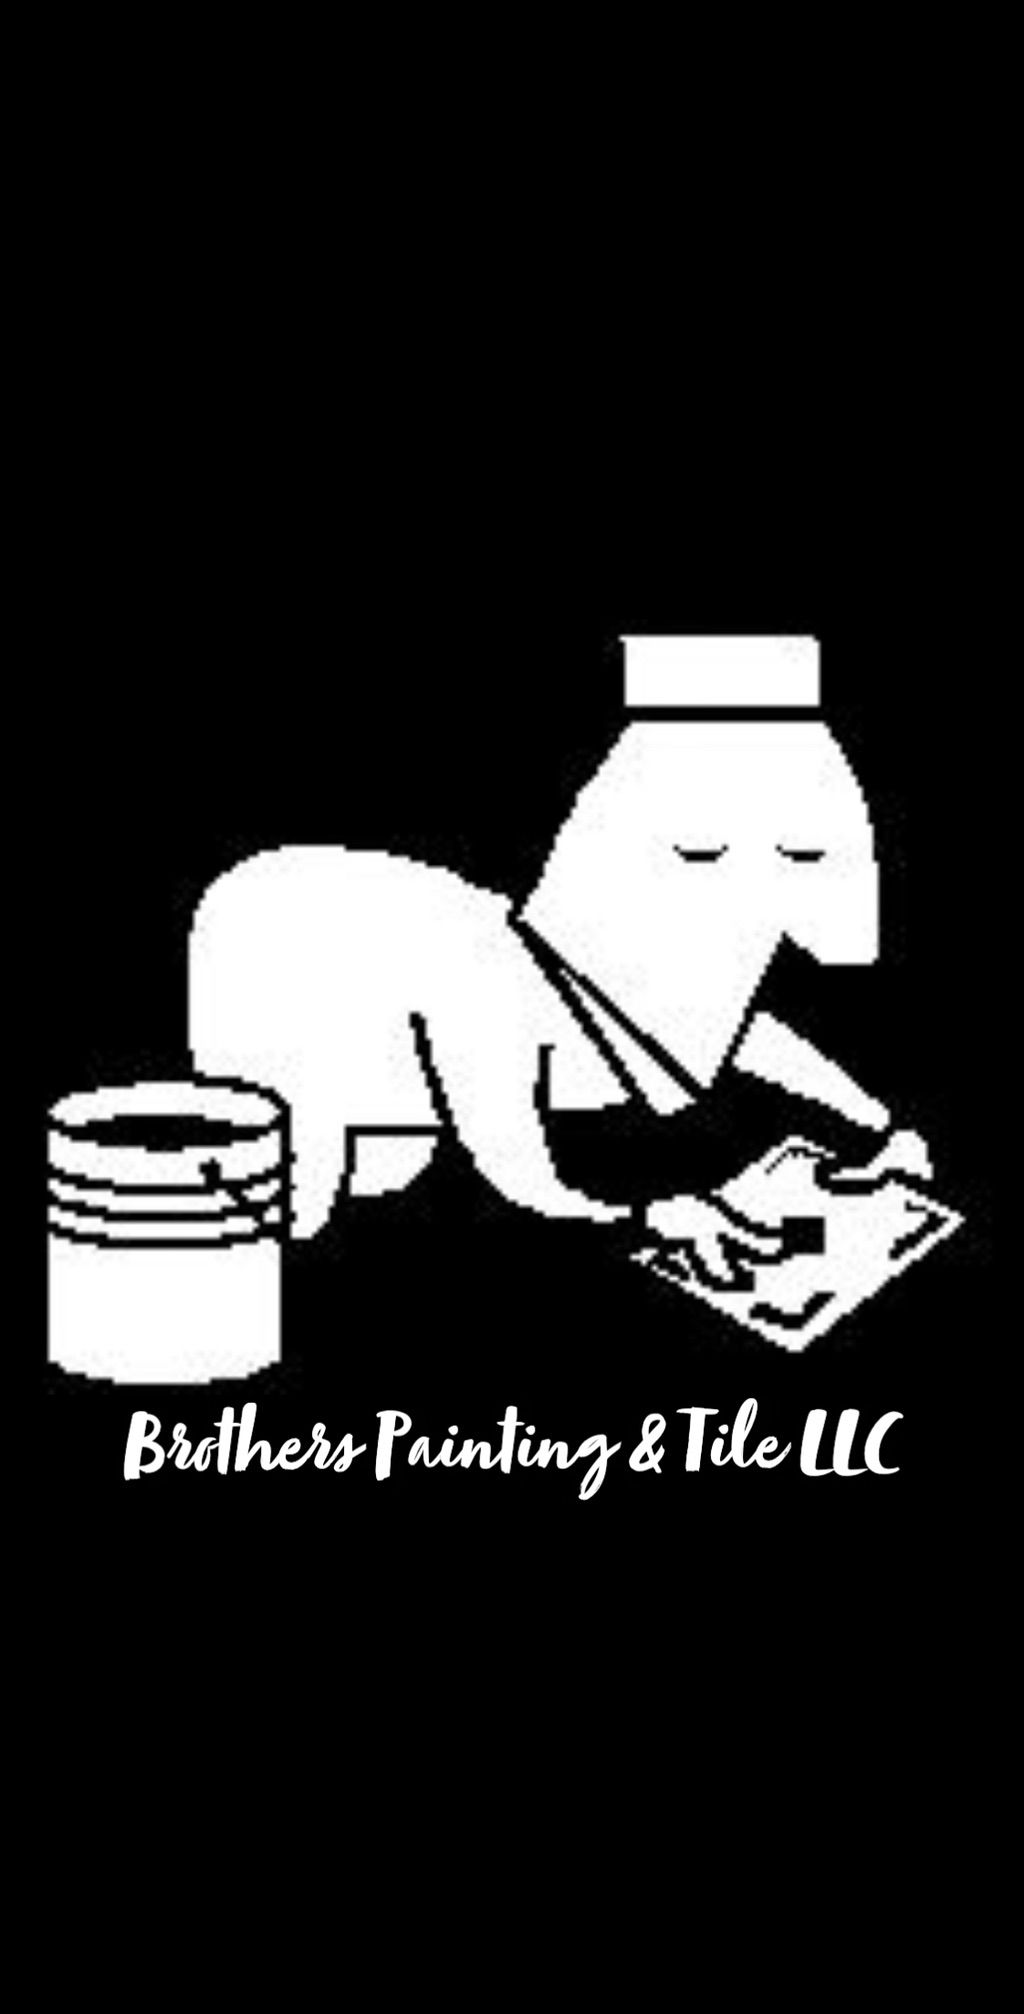 Brothers Painting & Tile, LLC